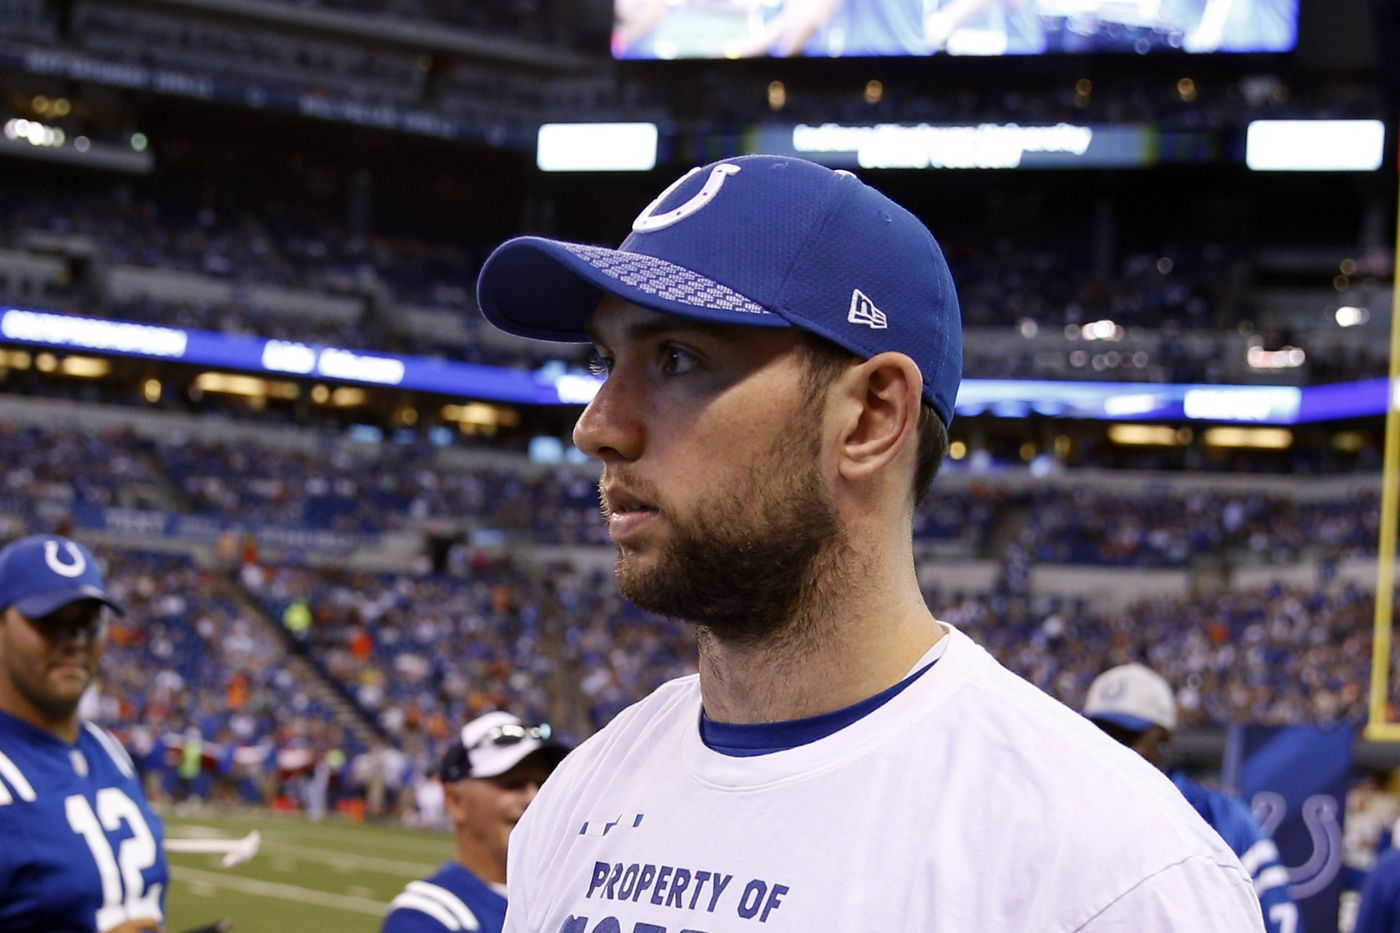 Andrew Luck's injury timeline: What we know about the Colts